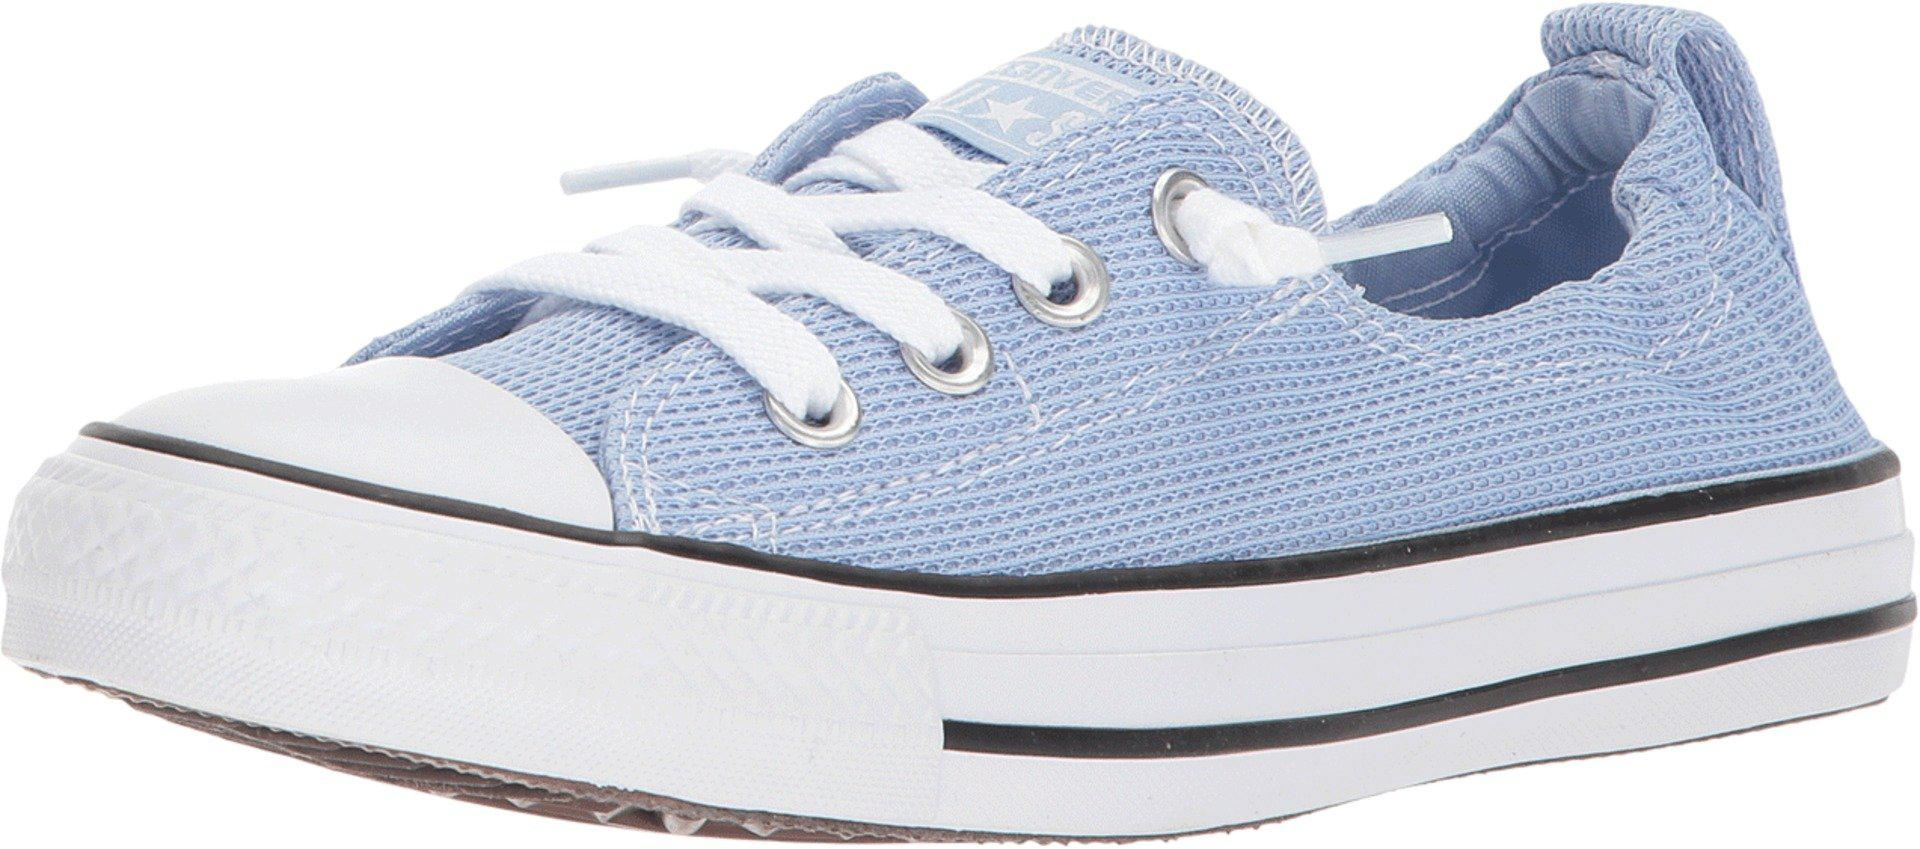 352485b154043d Gallery. Previously sold at  Zappos · Women s Converse Chuck Taylor ...